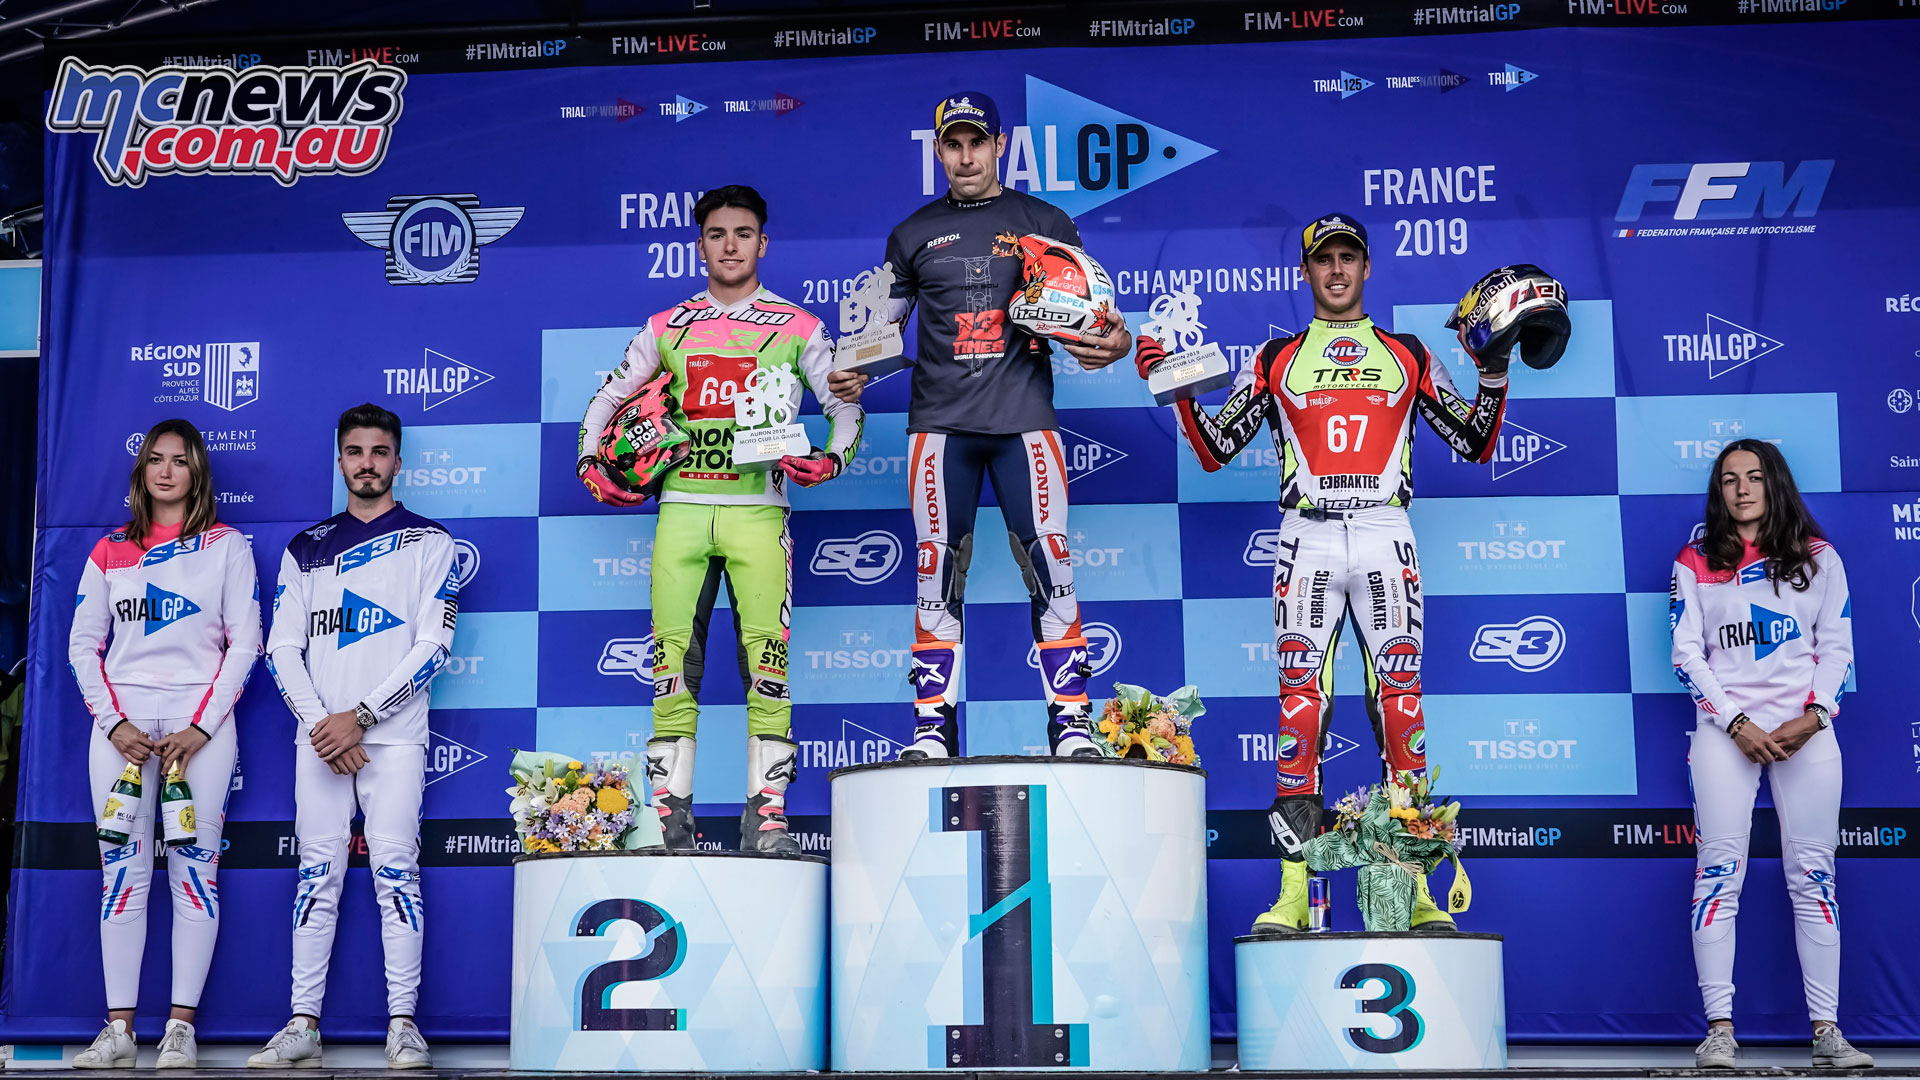 trialgp auron france Toni Bou podium